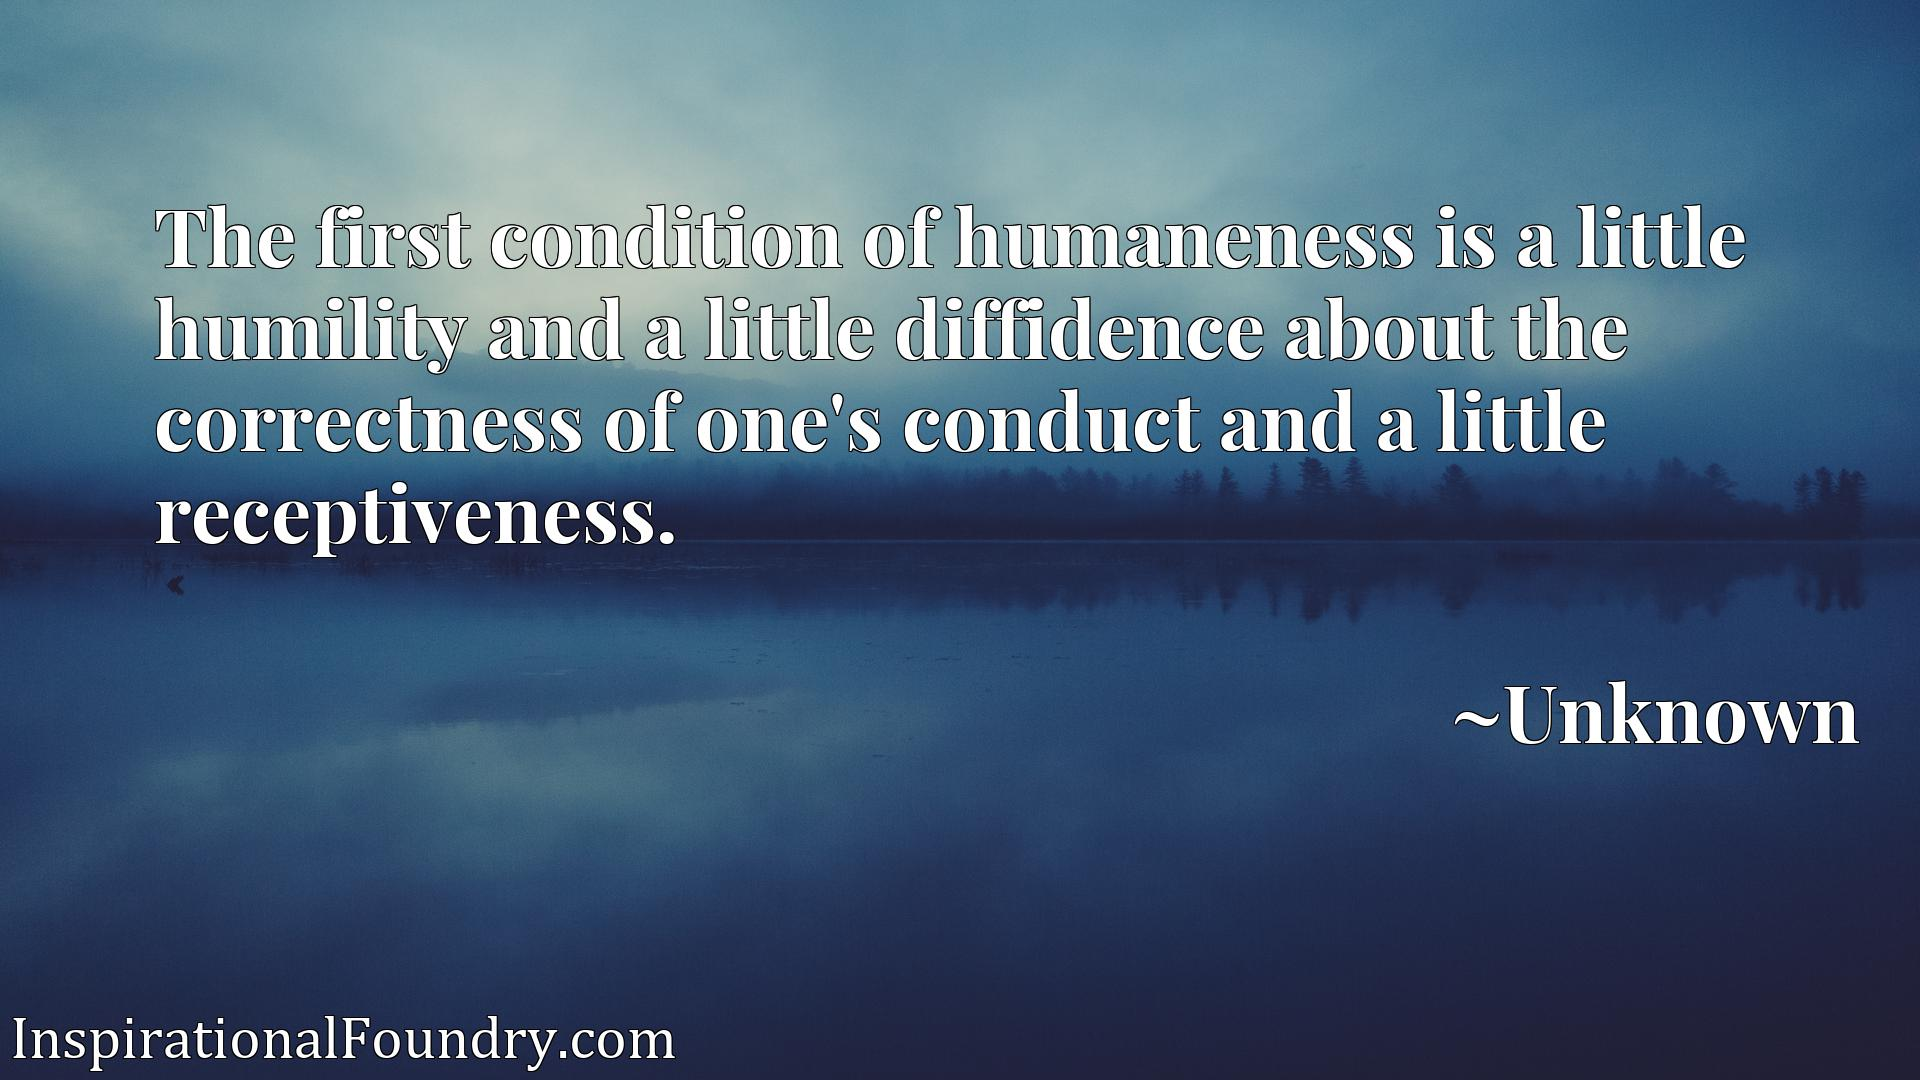 The first condition of humaneness is a little humility and a little diffidence about the correctness of one's conduct and a little receptiveness.